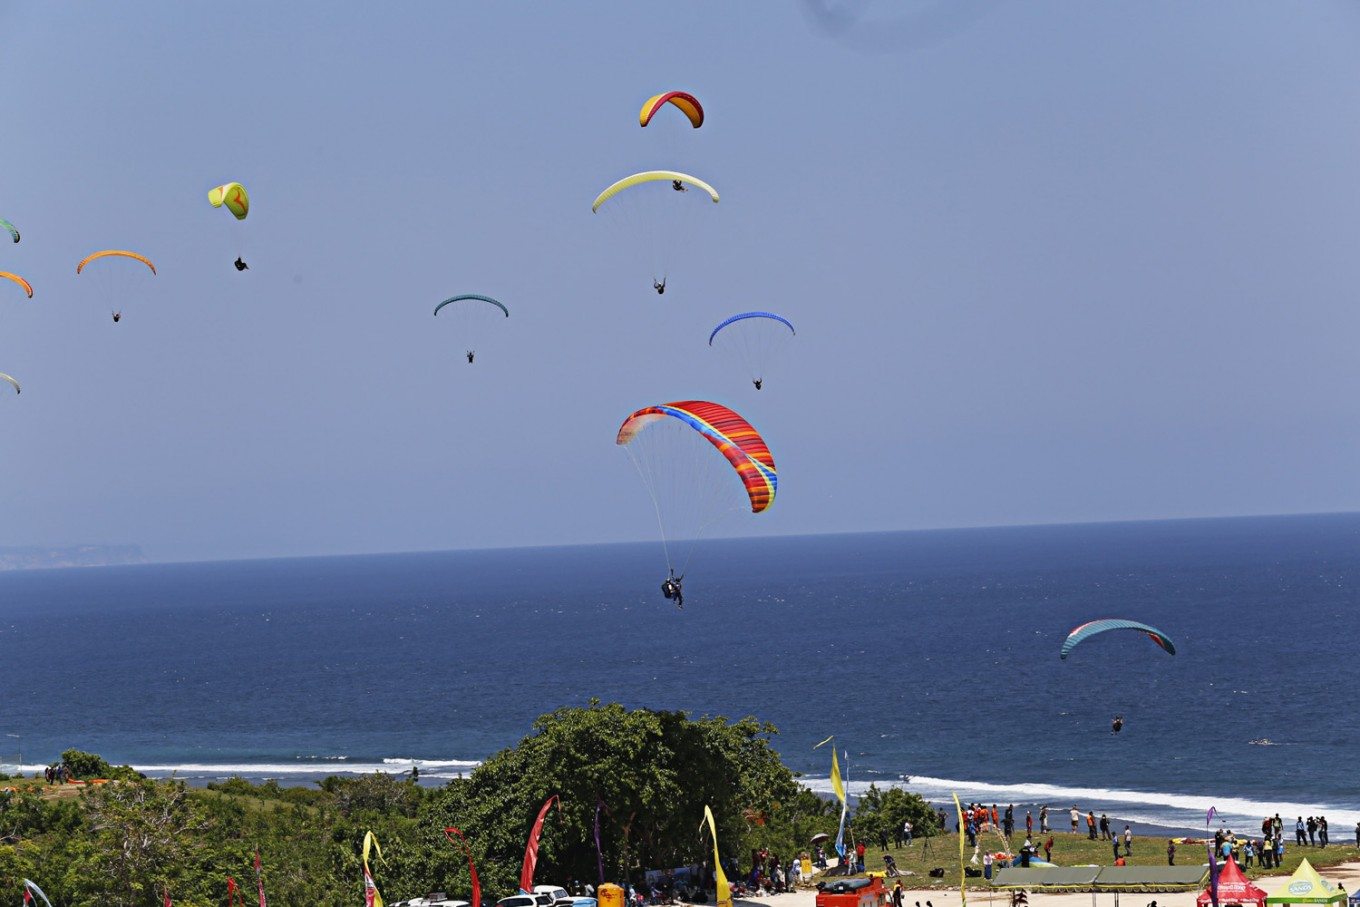 Malang's Mondangan Beach a haven for paragliding enthusiasts - News